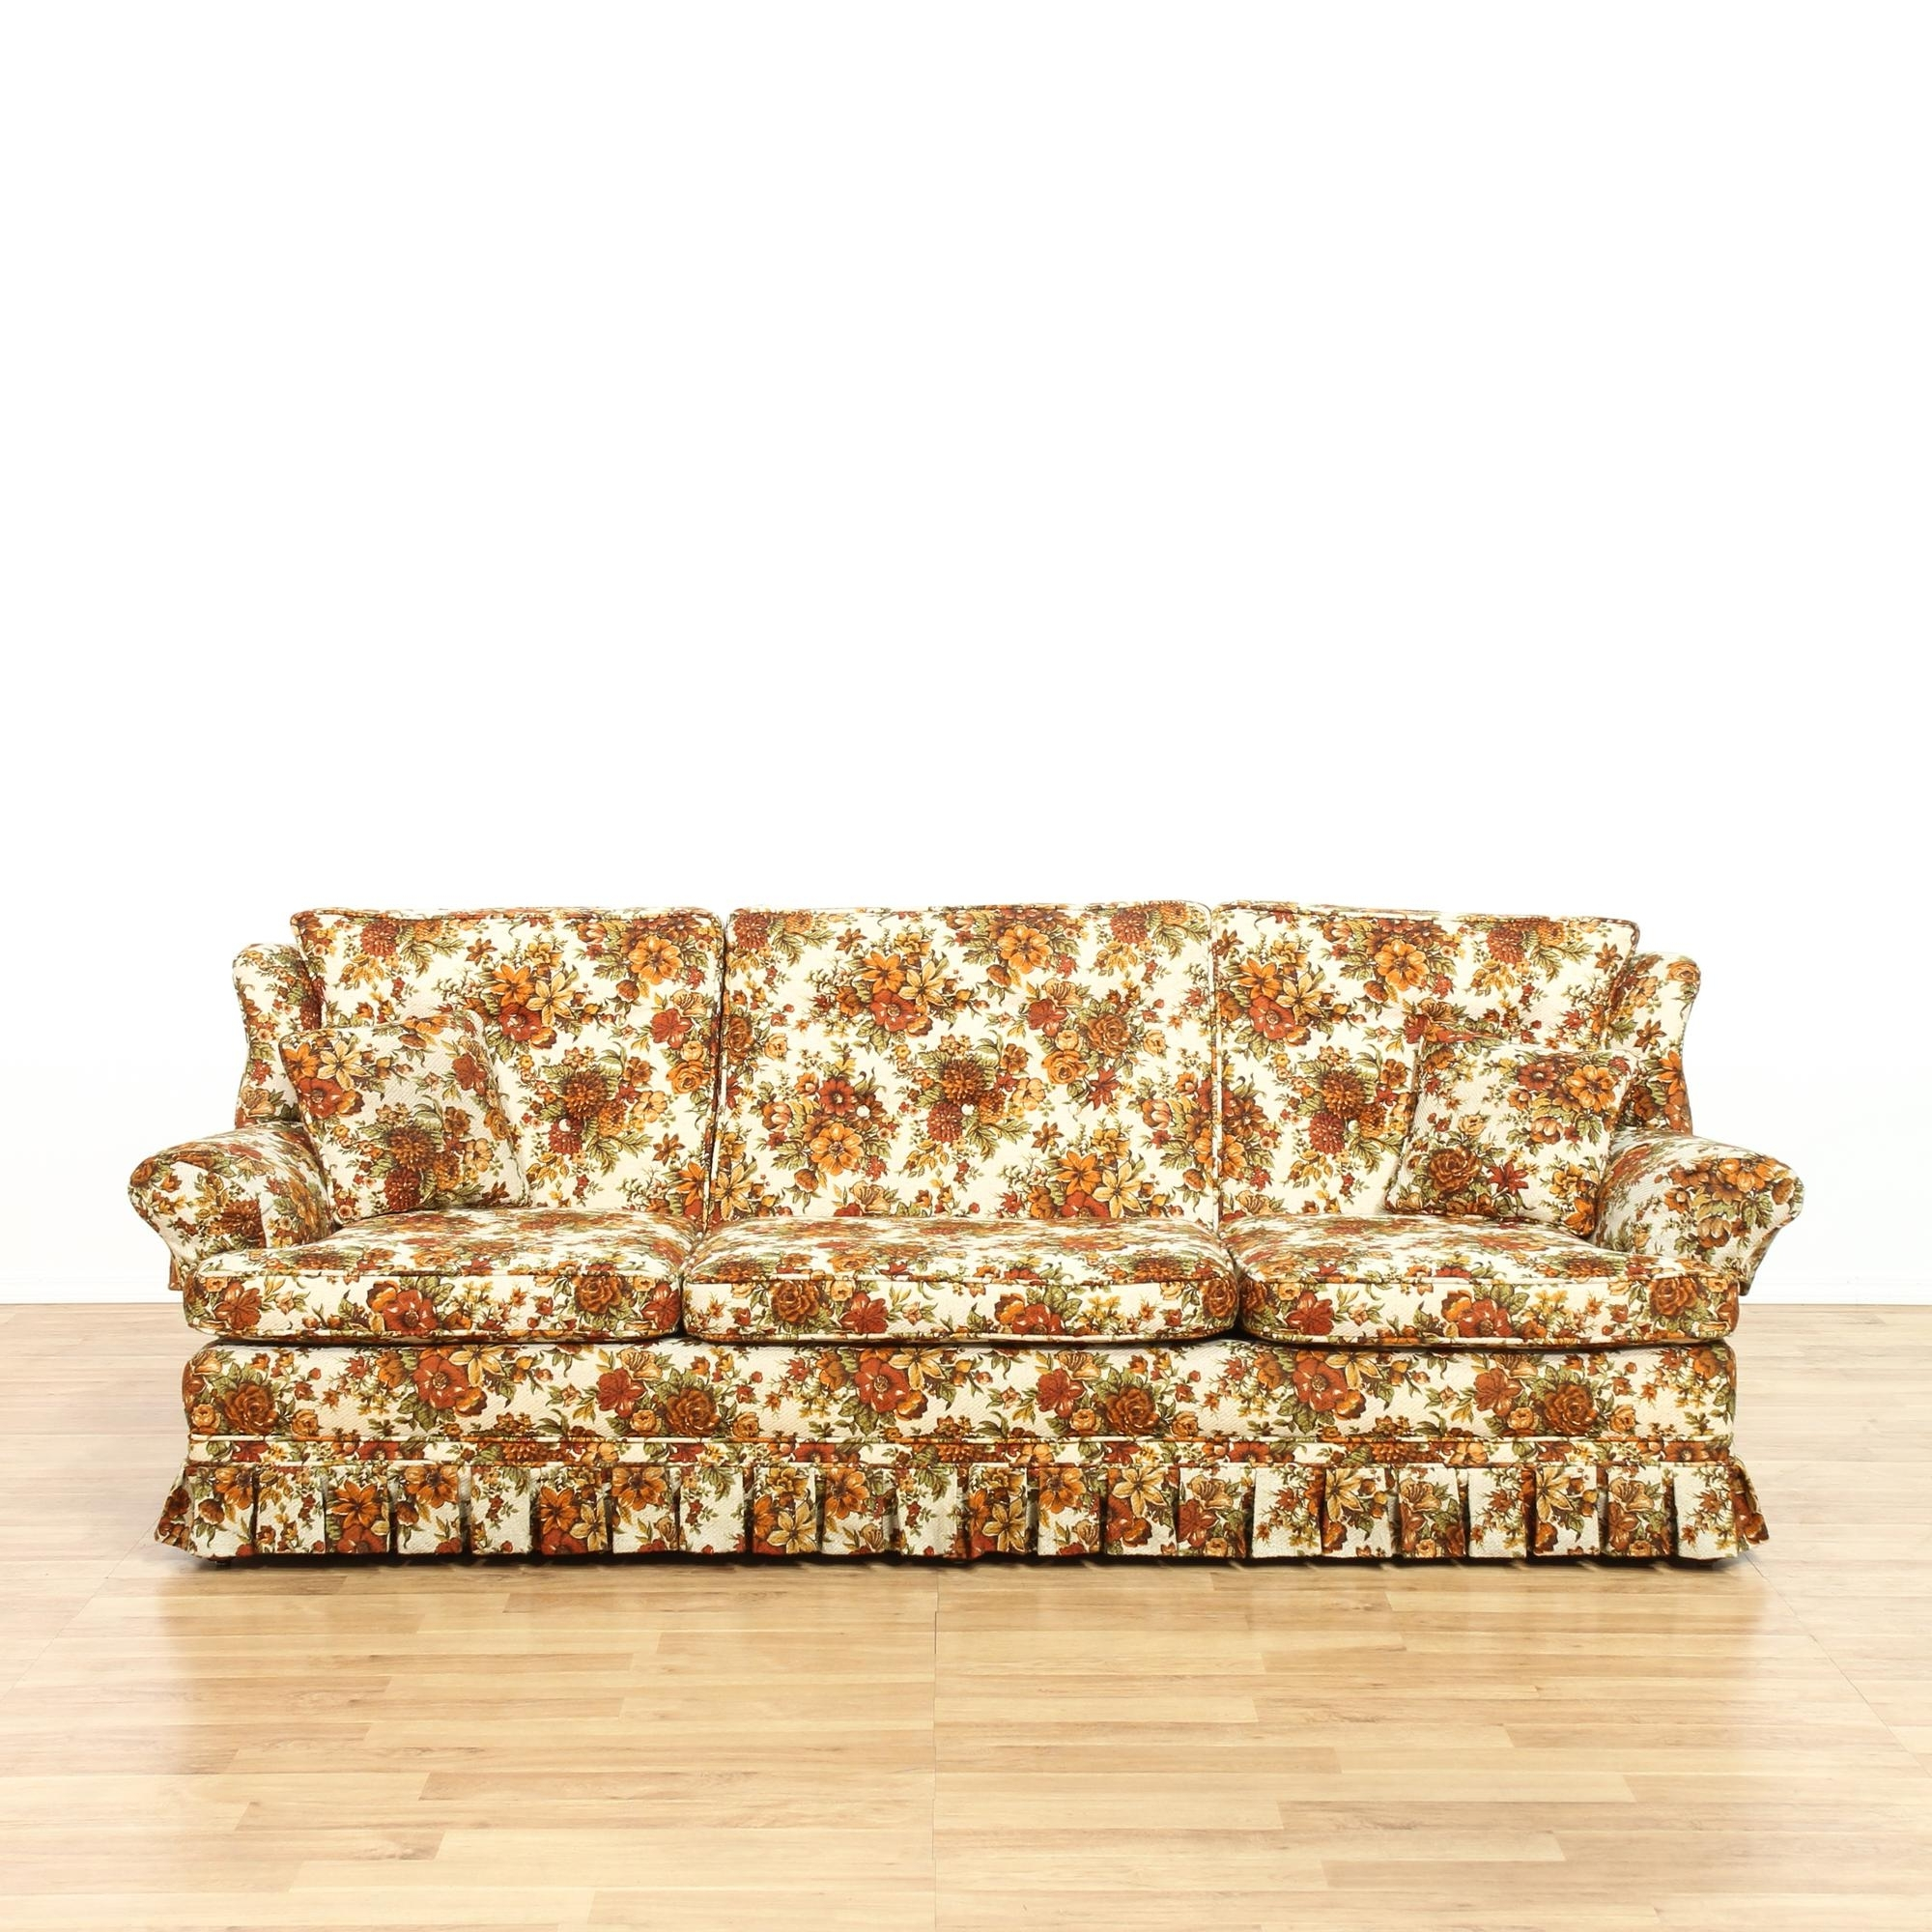 This Sofa Is Upholstered In An Orange Floral Pattern (View 16 of 20)